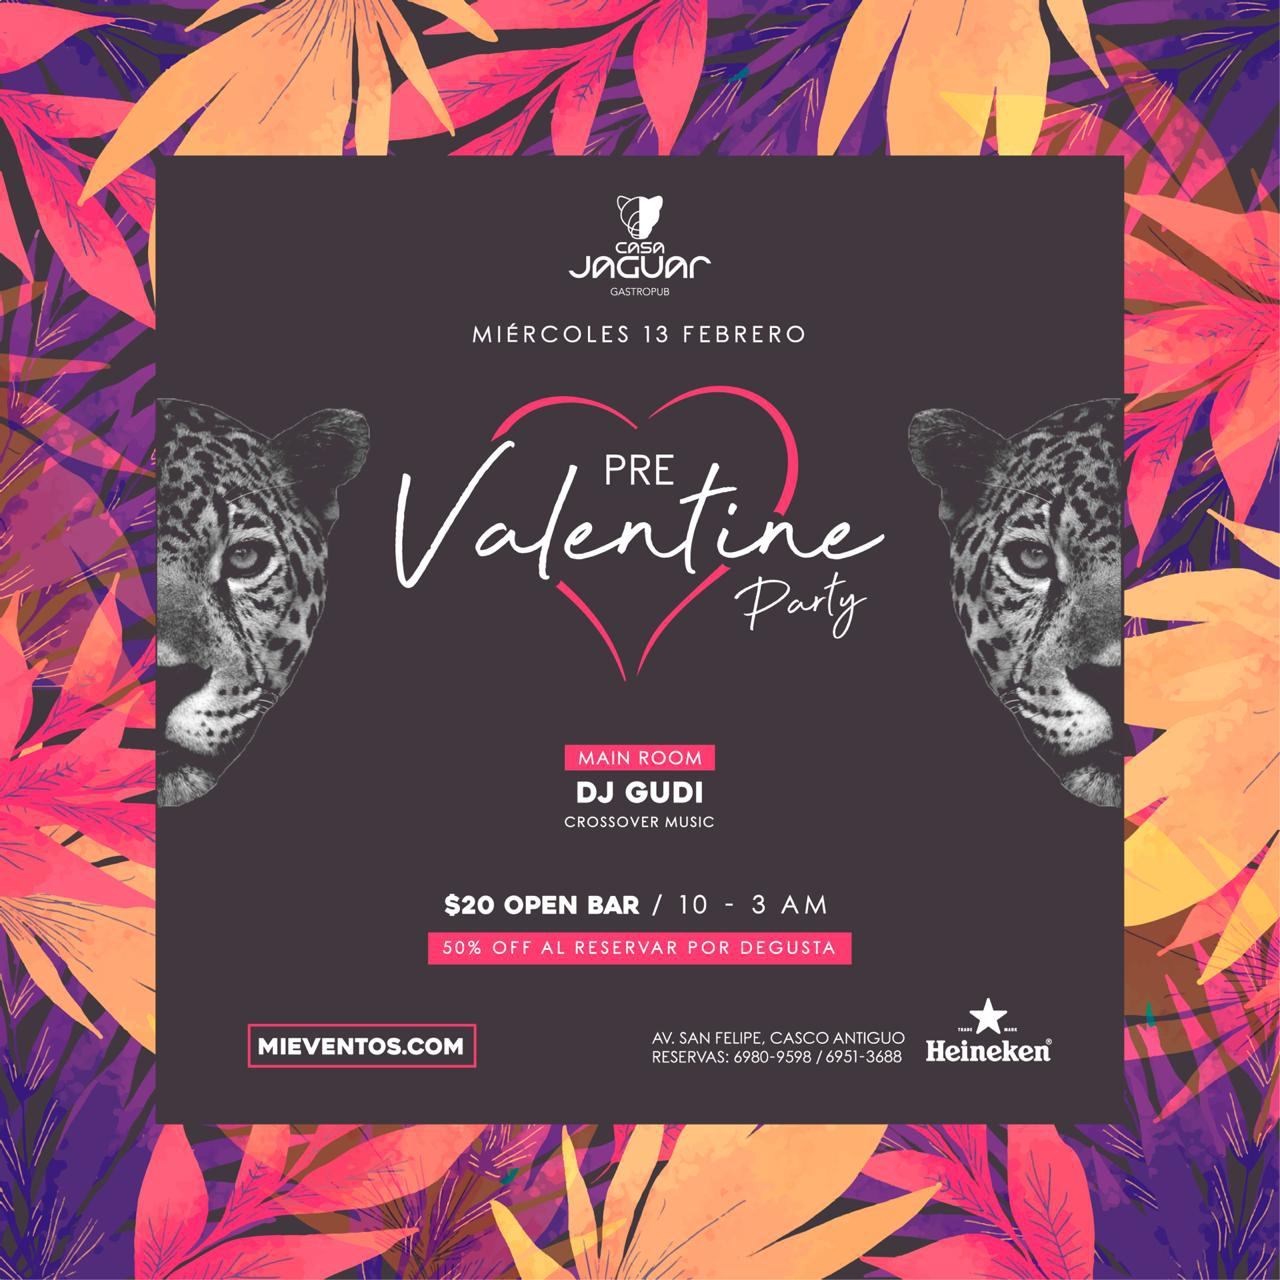 Valentines day Pre Party